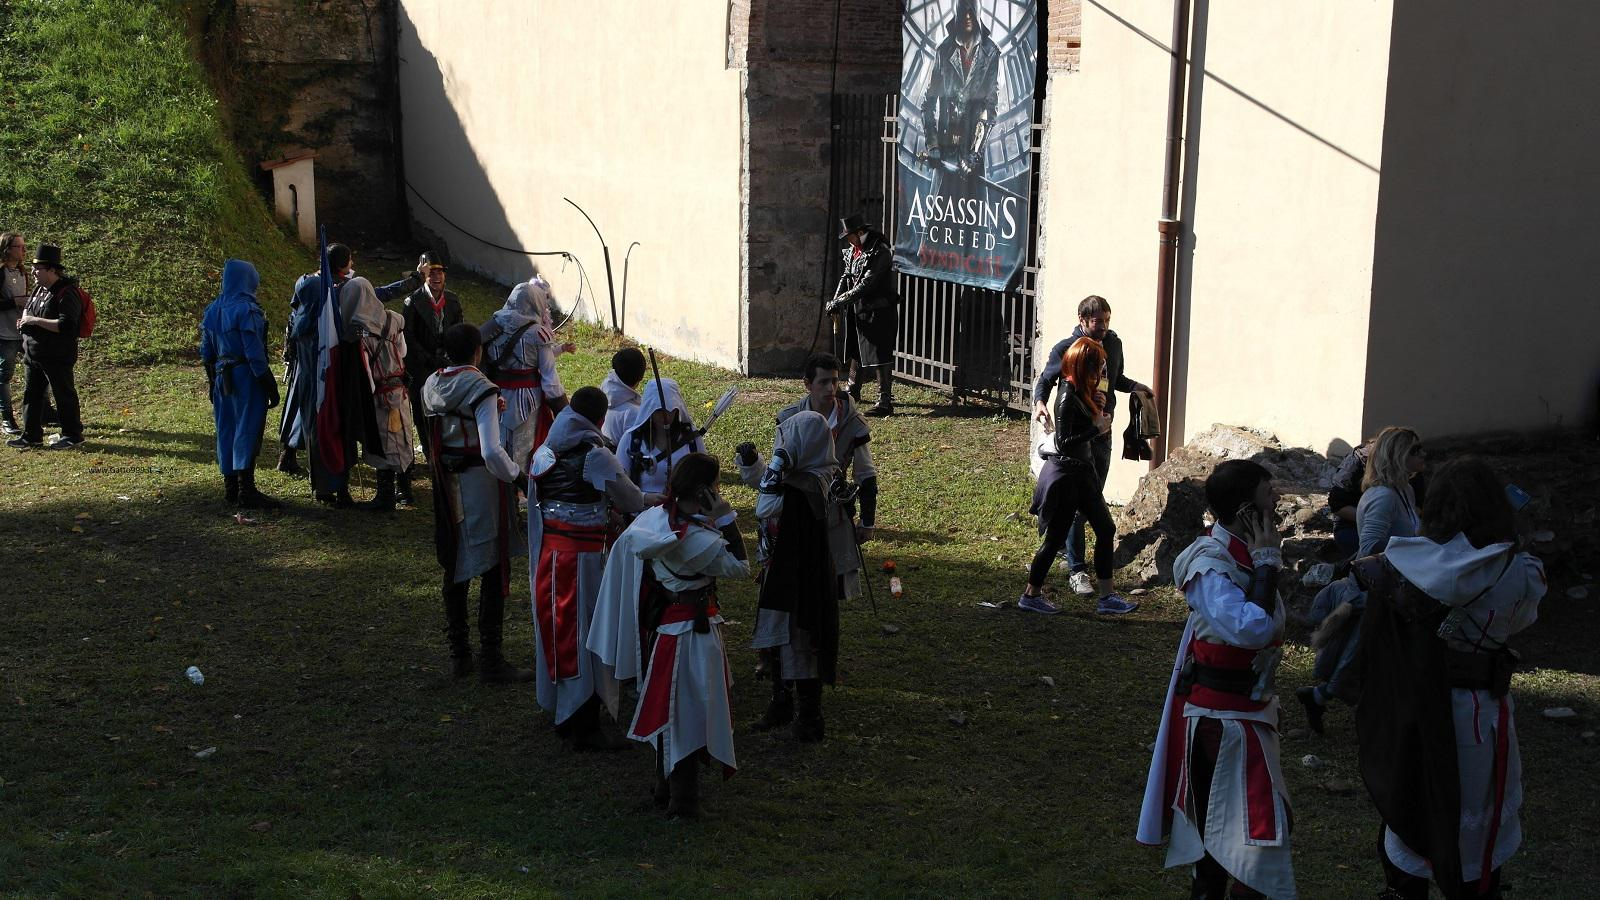 Lucca Comics and Games 2015 - Cosplay Assassin's Creed